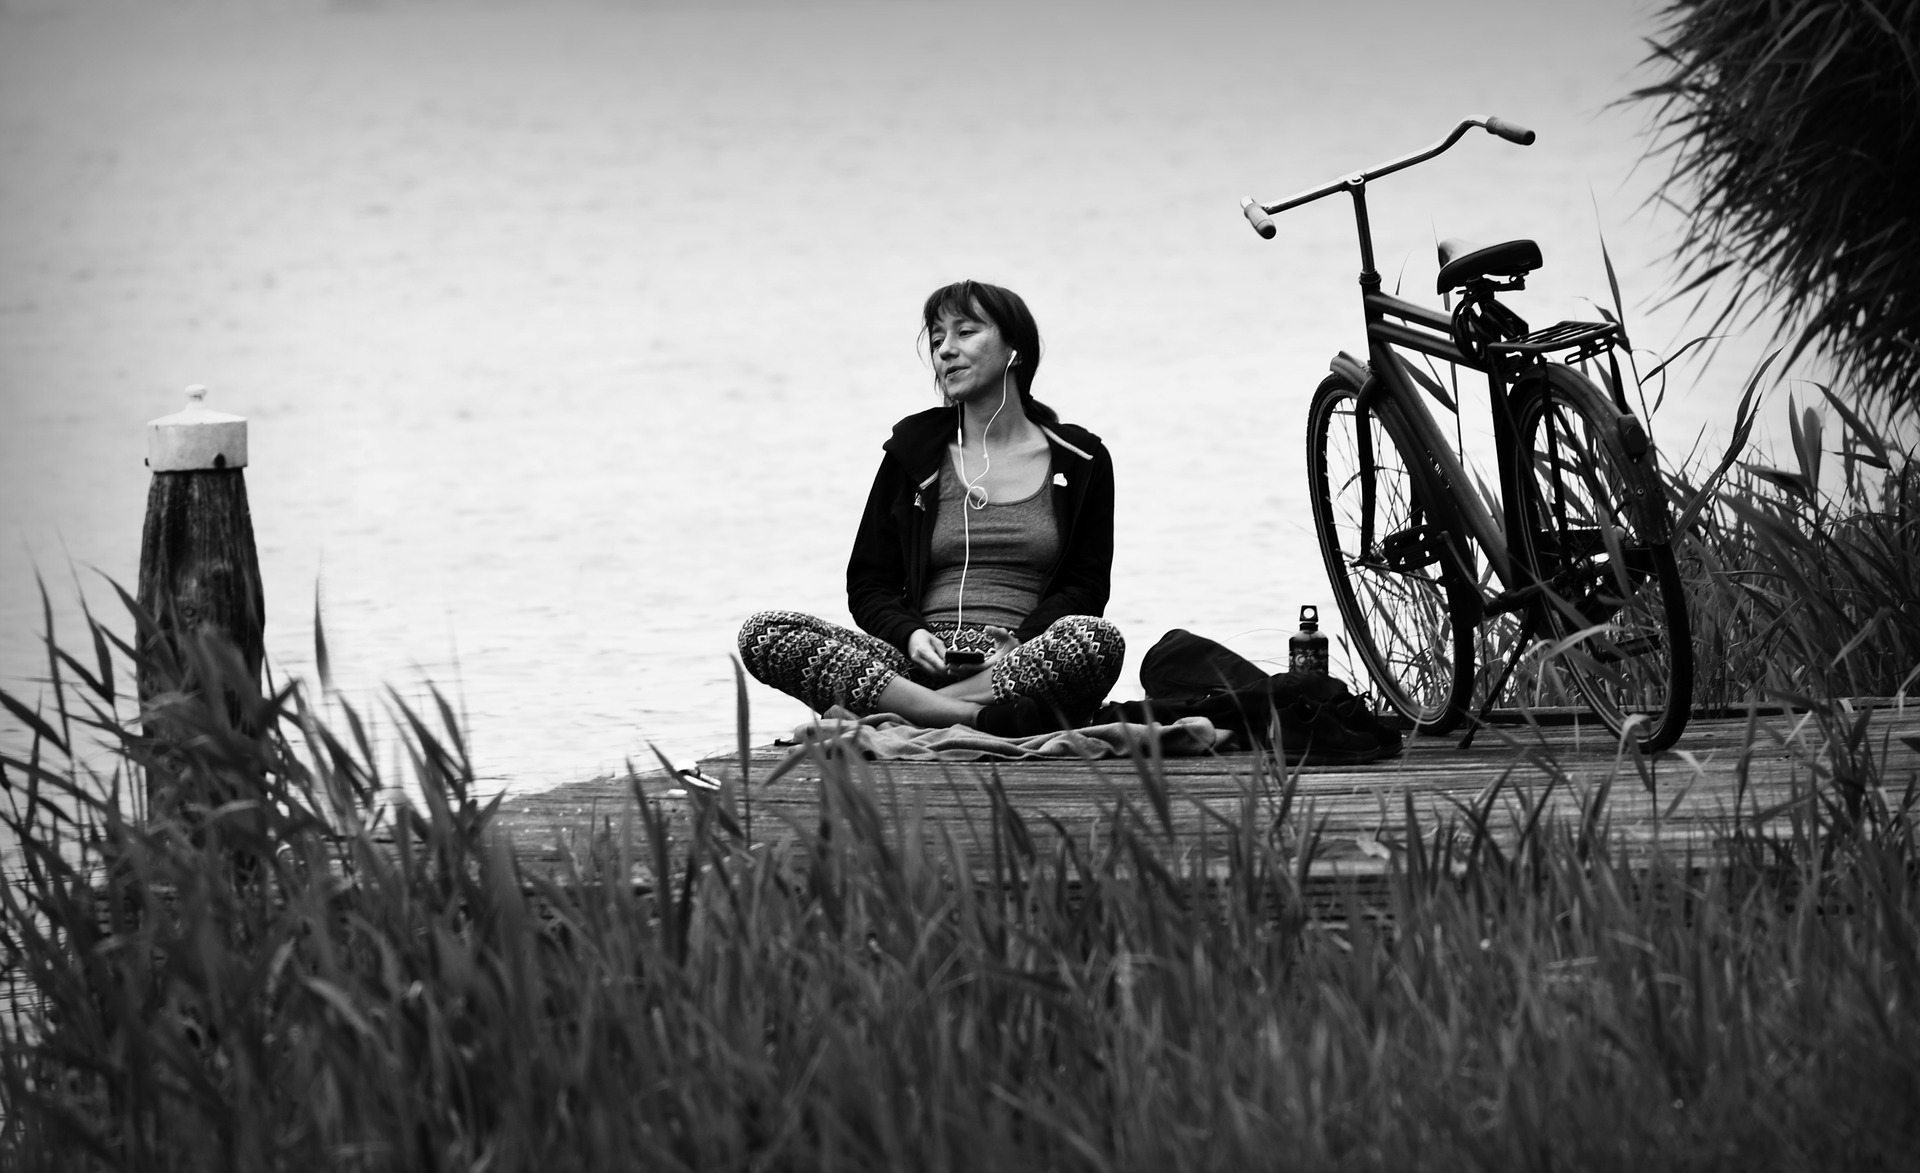 Woman, sitting, meditating, bicycle, meditation